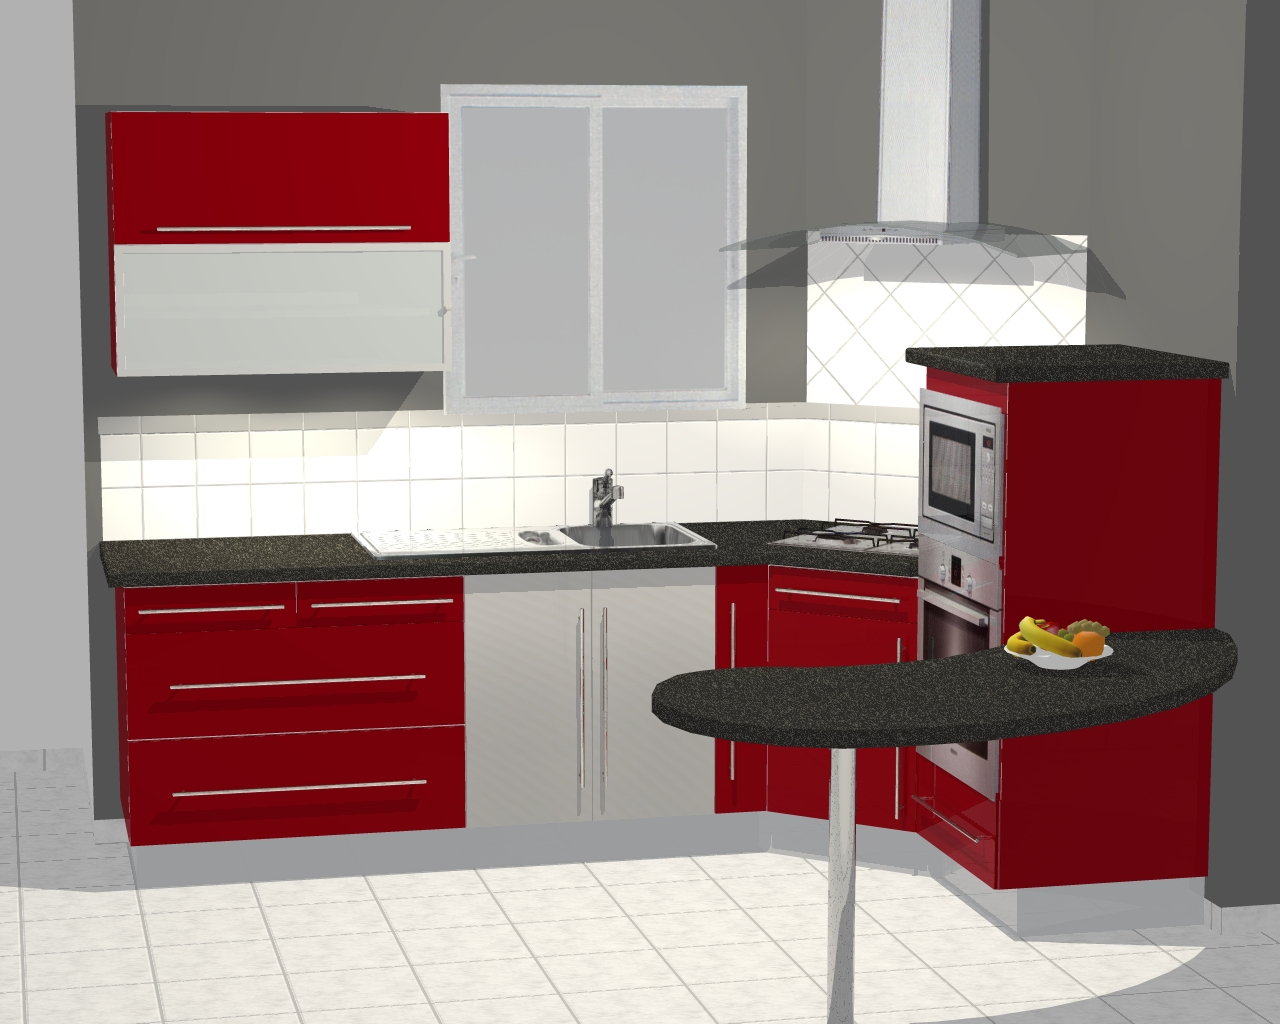 Cuisine conception 3d for Cuisine conception 3d